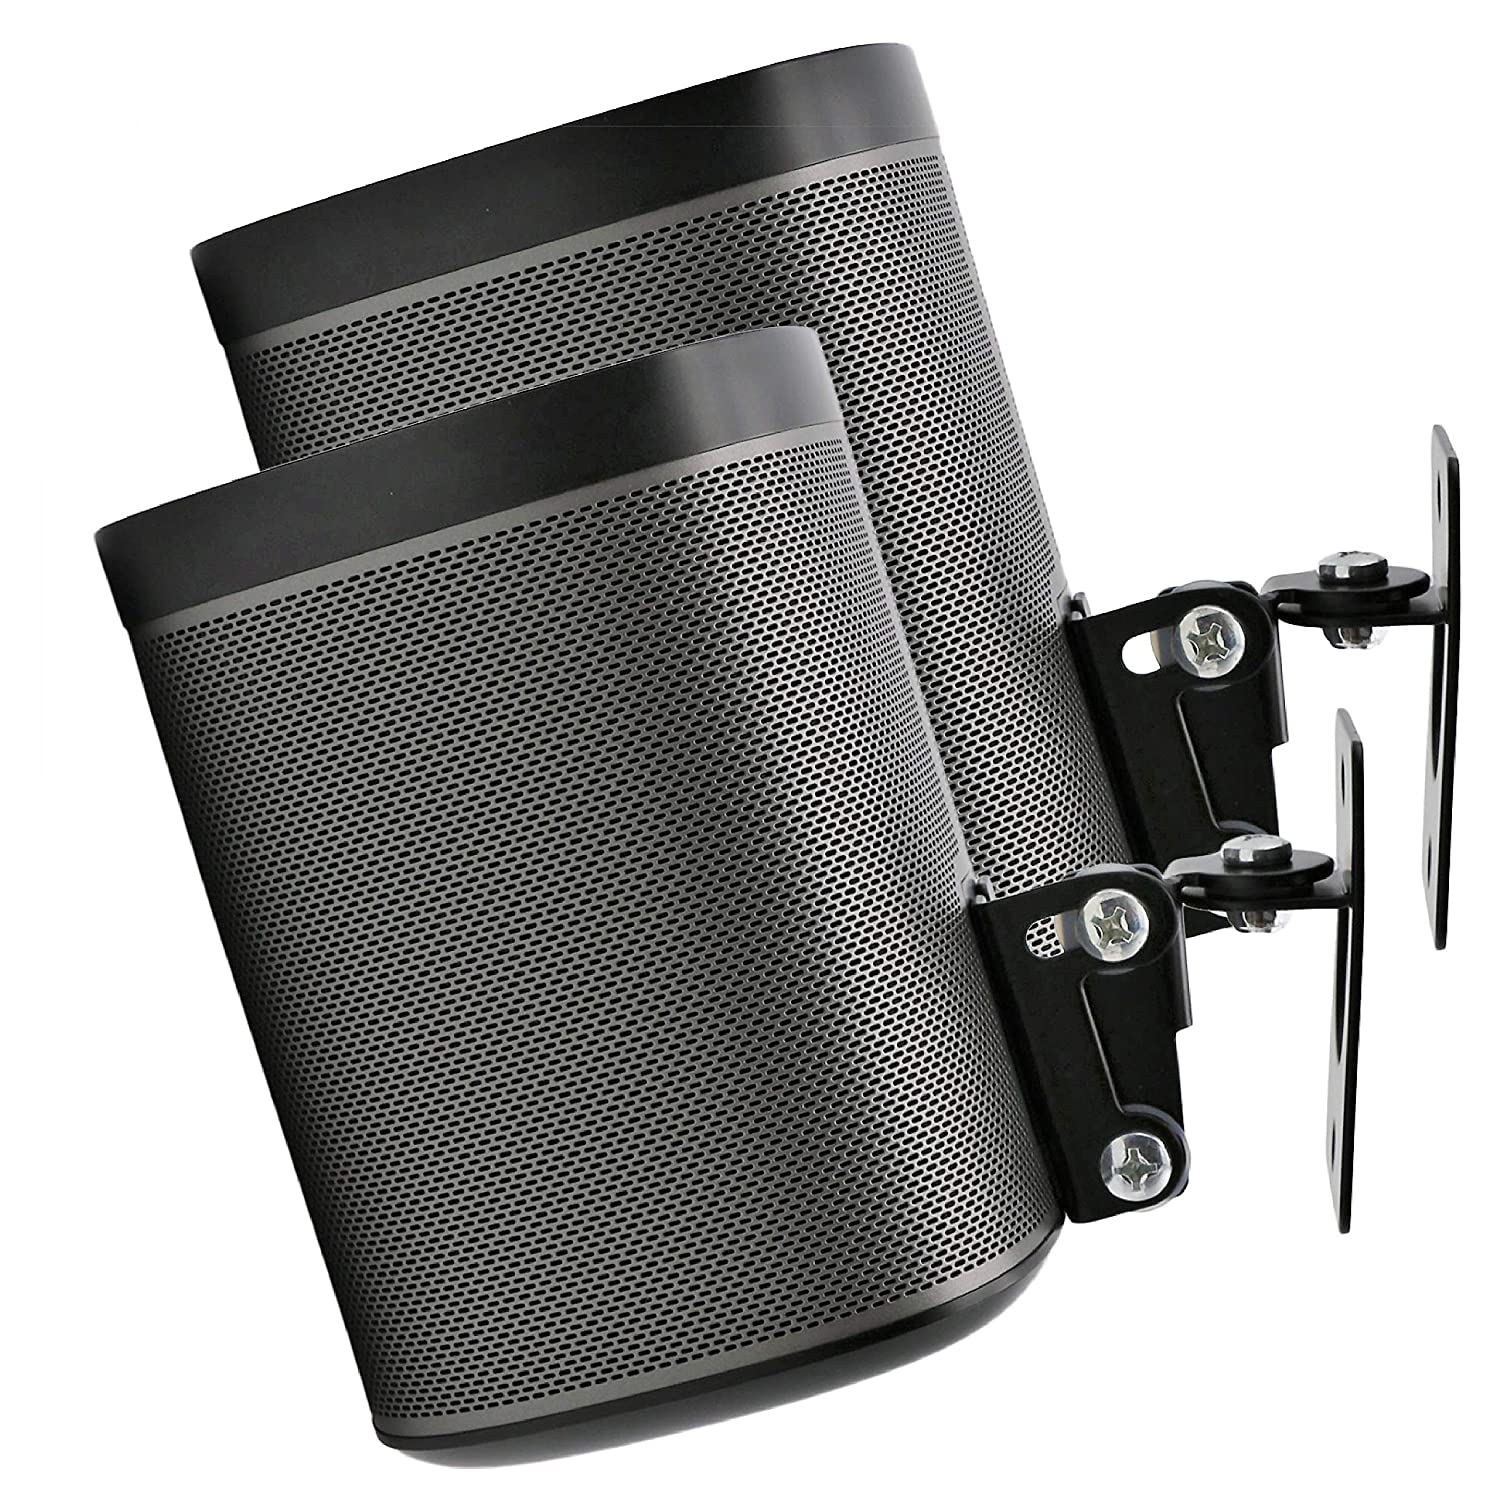 Efterstræbte Amazon.com: 2 x SONOS Play 1 Wall Mount, Twin Pack, (NOT OL-22